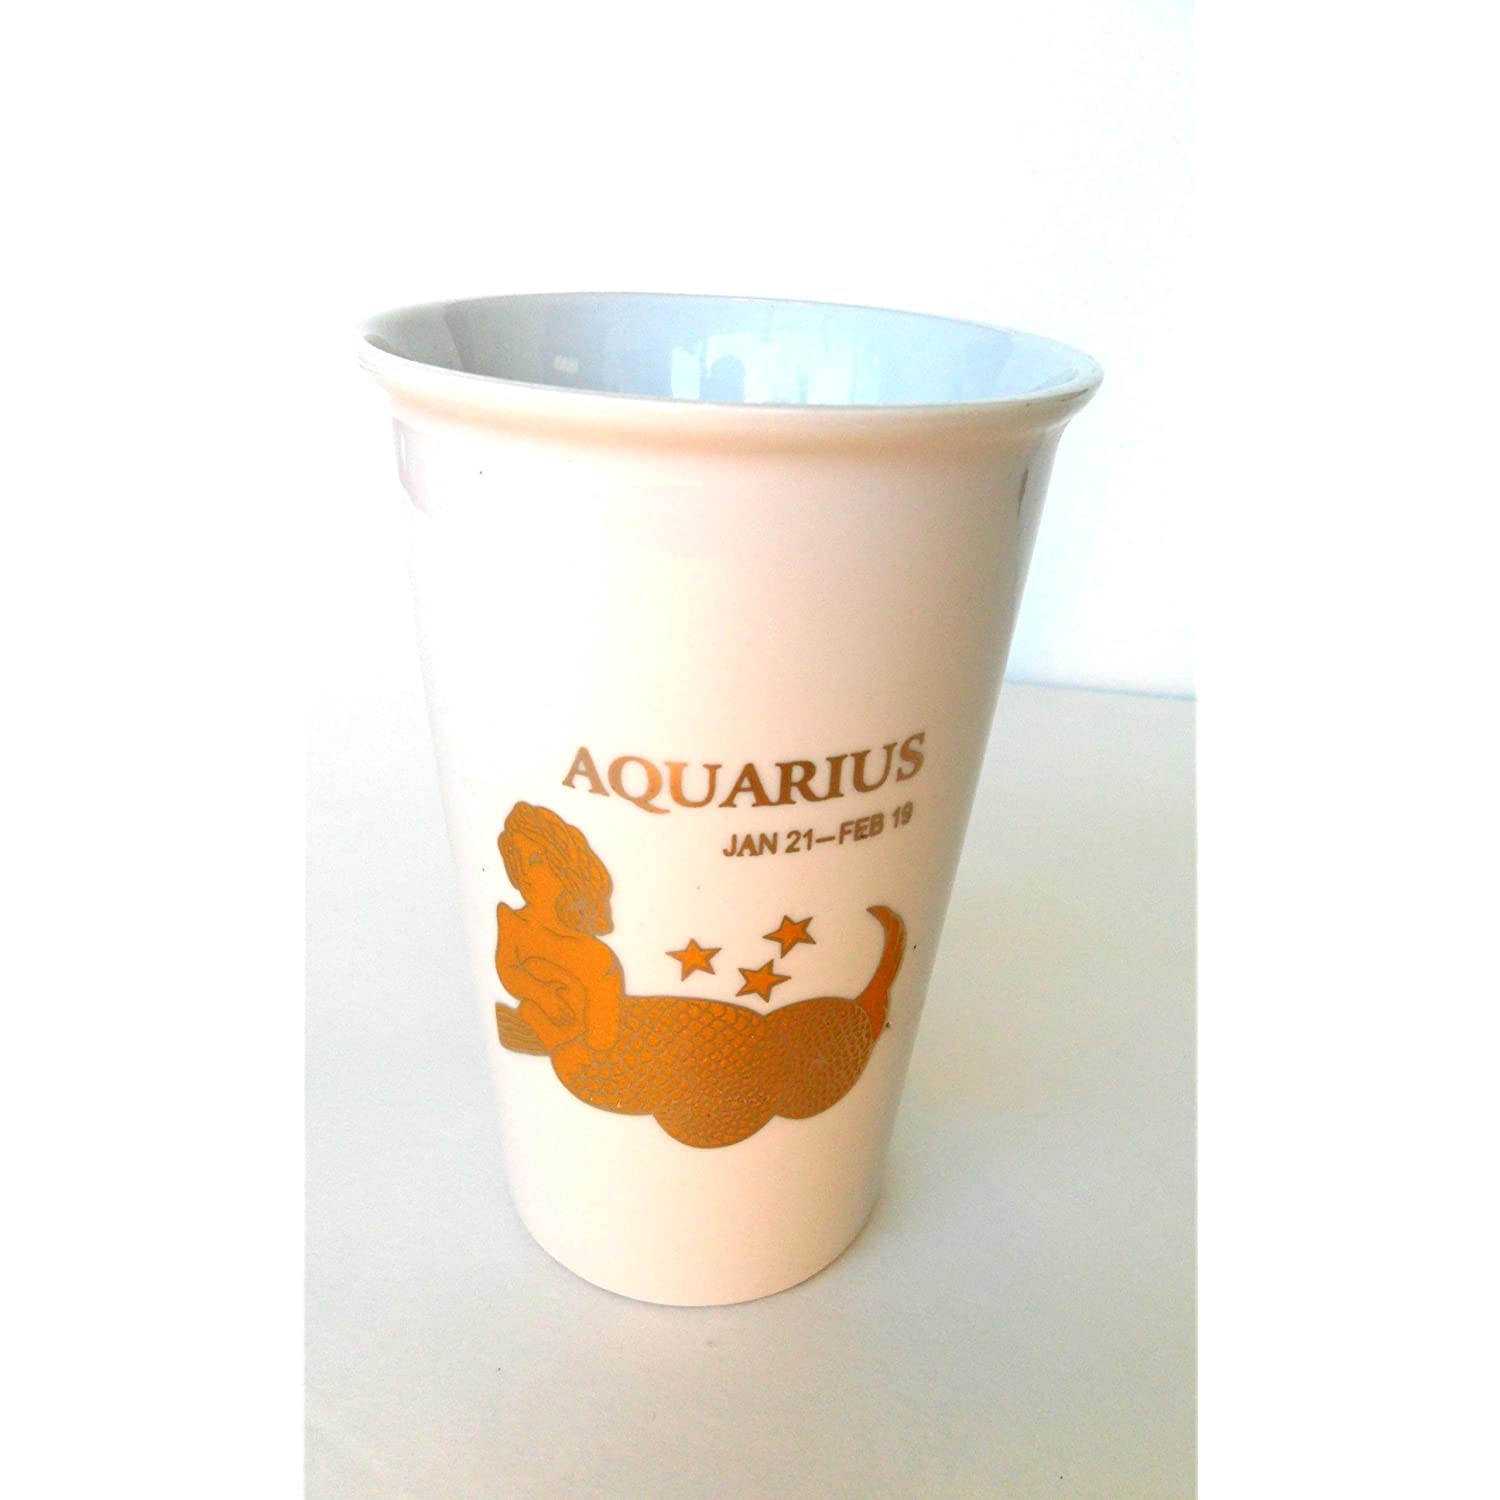 Birthday Gift of Zodiac Sign Aquarius Embossed in Gold Travel Coffee Tea Mug Ceramic 15oz